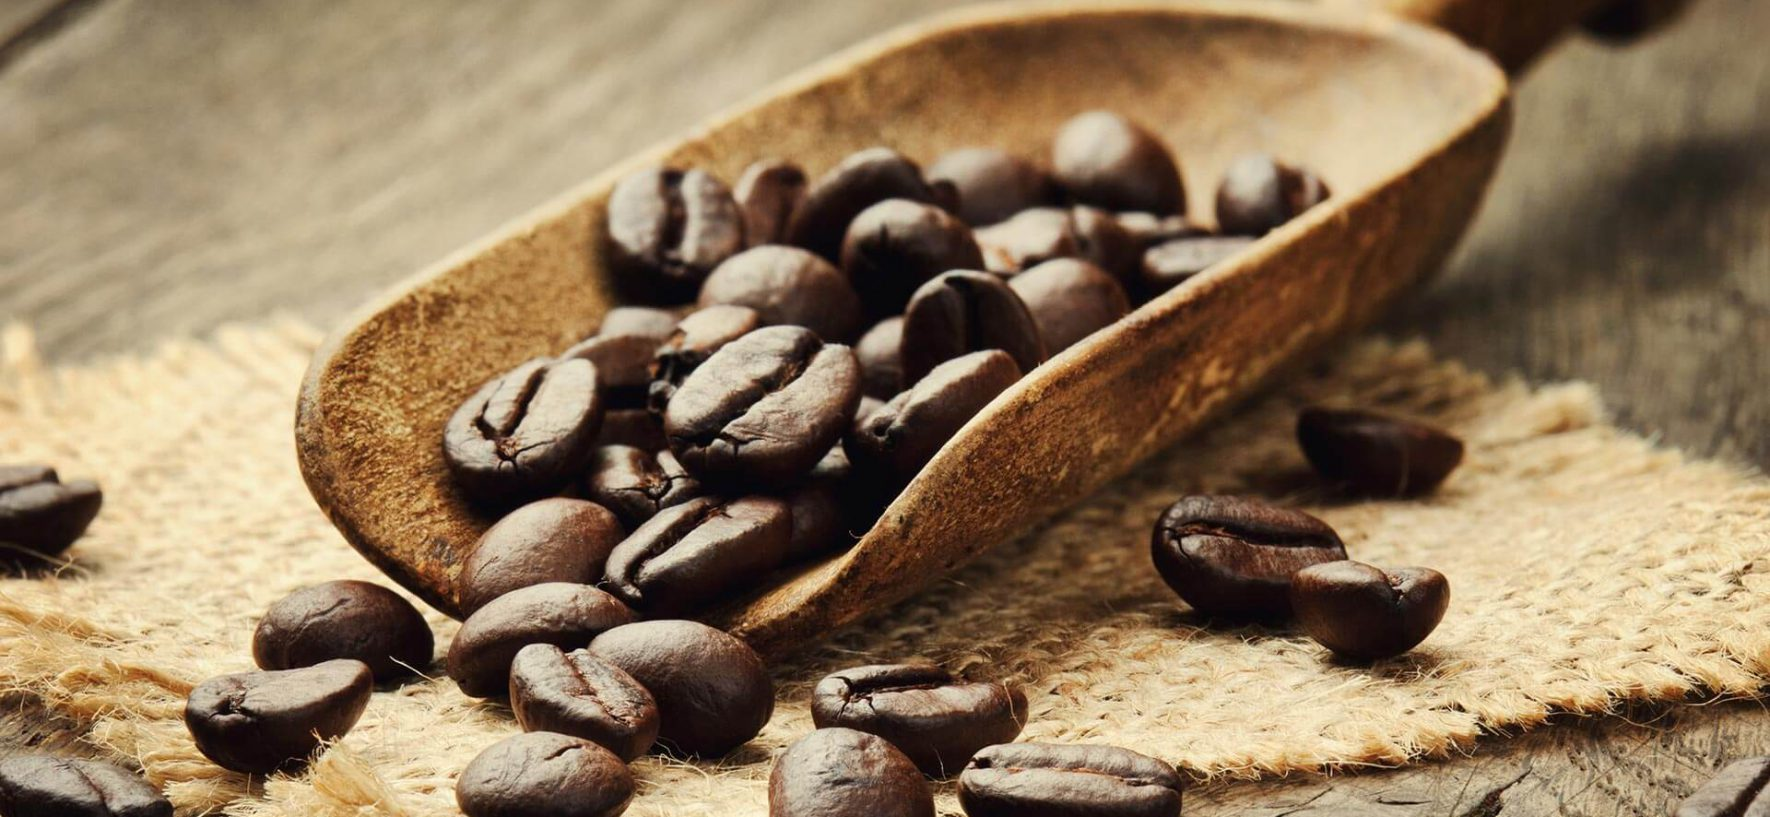 Heart Diseases & Coffee: Do They Go Together?